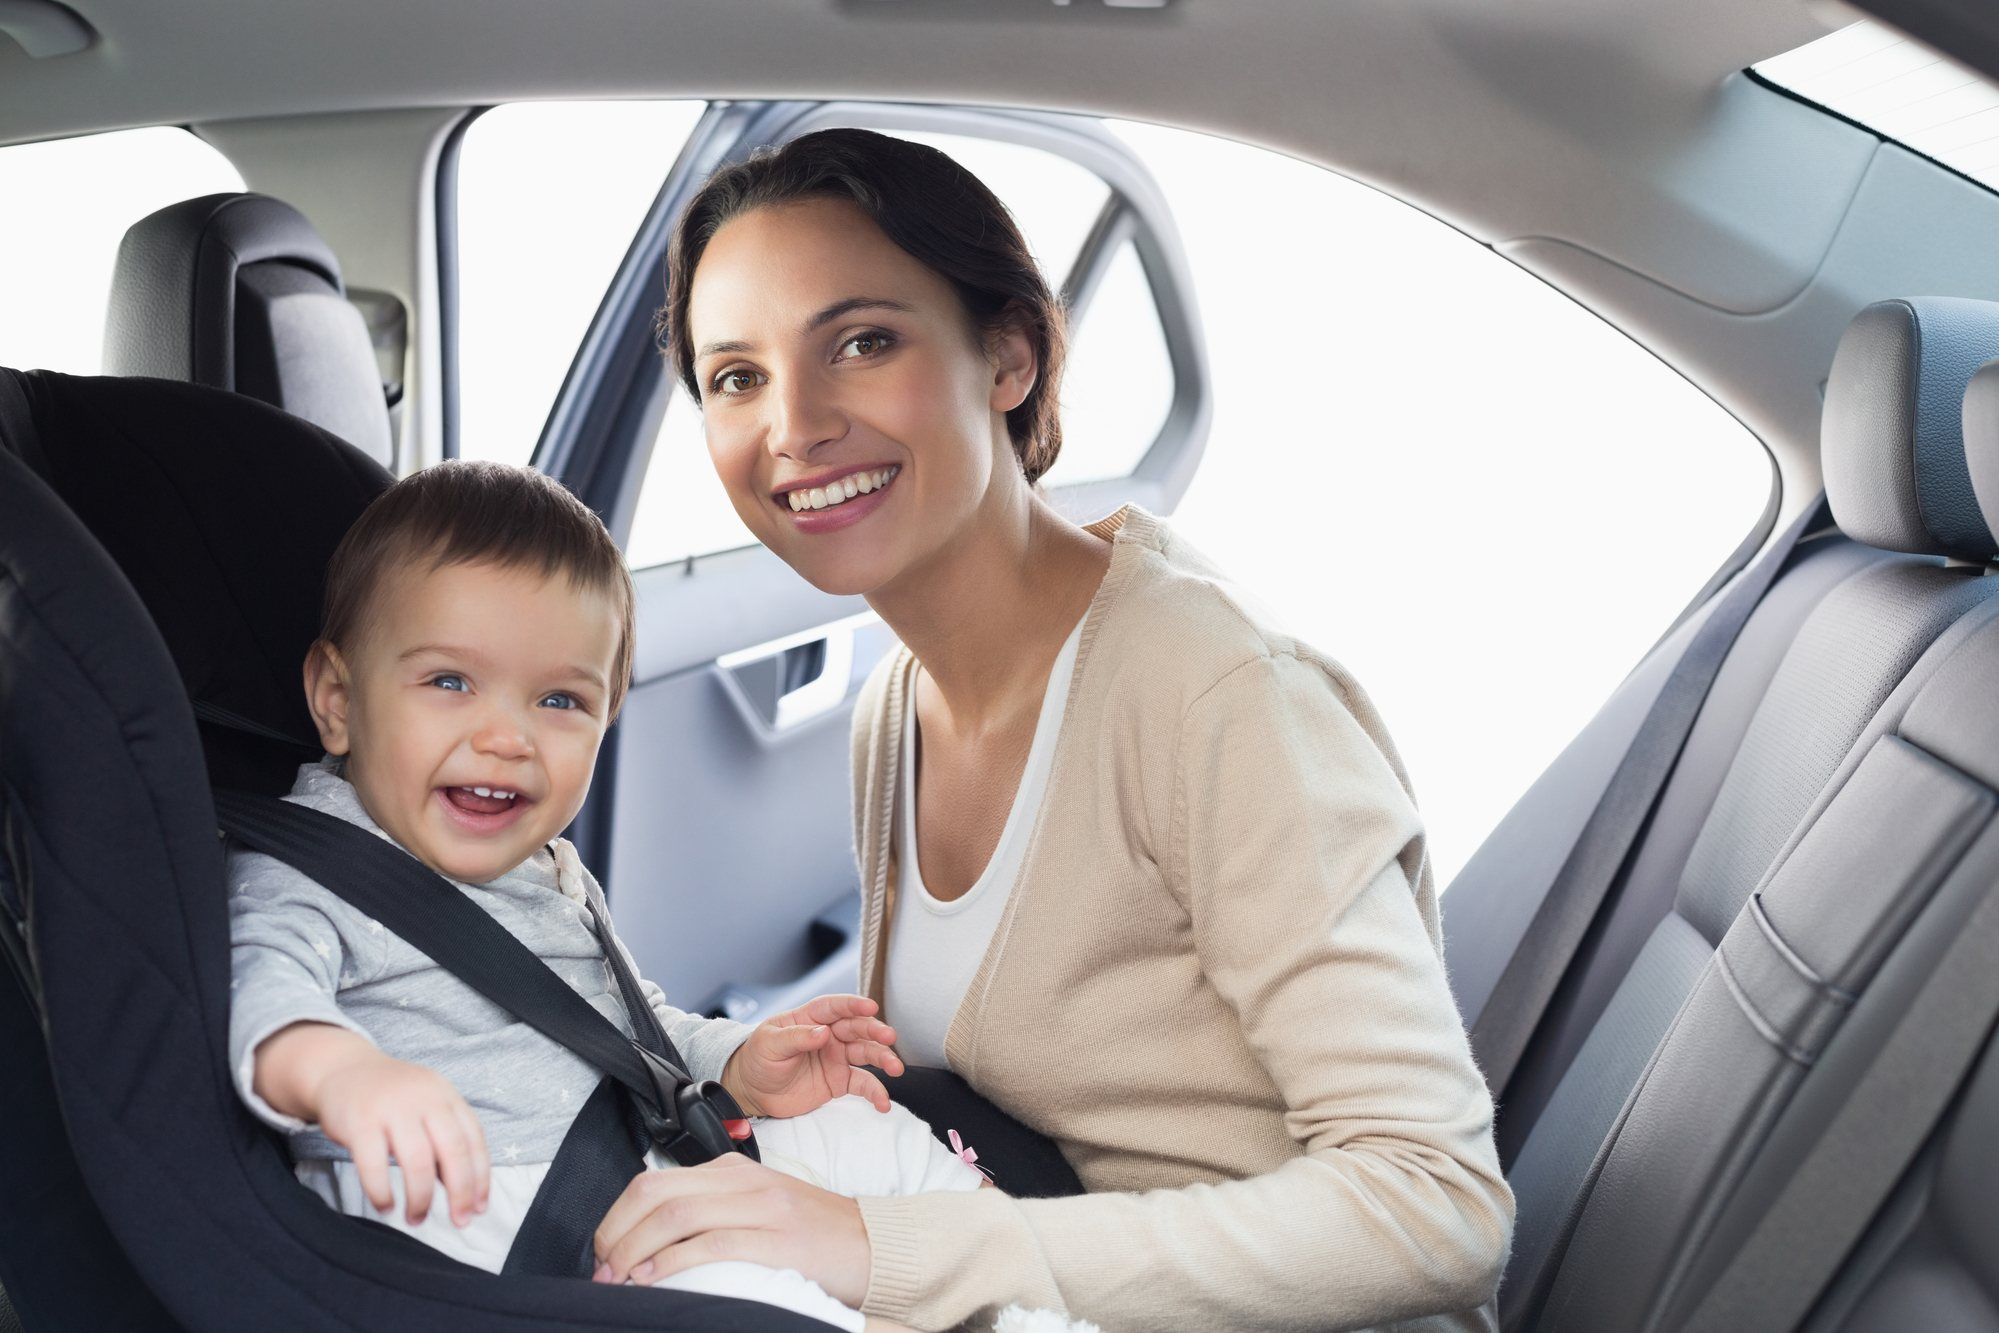 Get in the backseat with your baby or toddler for part of your road trip, if possible